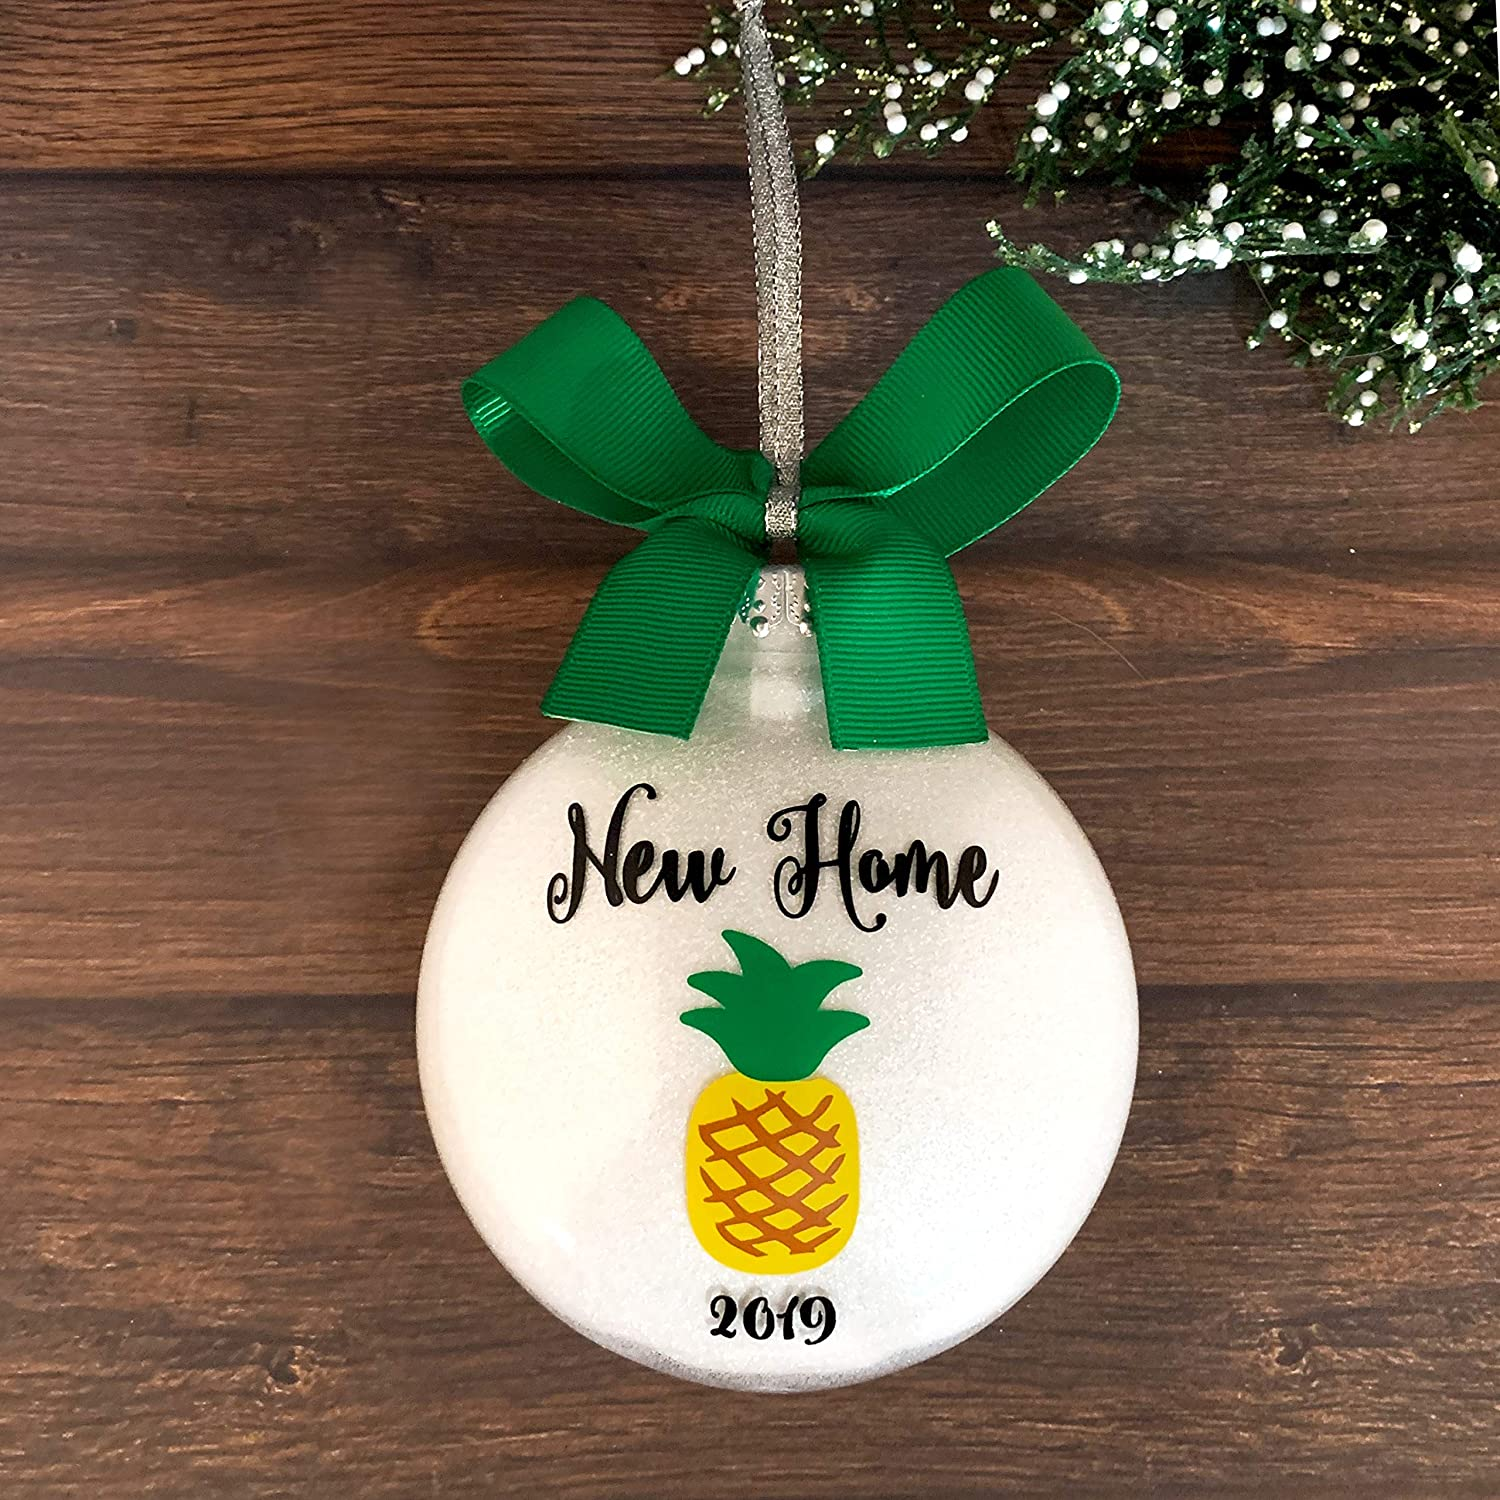 White House Christmas Ornament 2019.New Home Christmas Ornament 2019 New Homeowner Gifts Personalized New House Gift